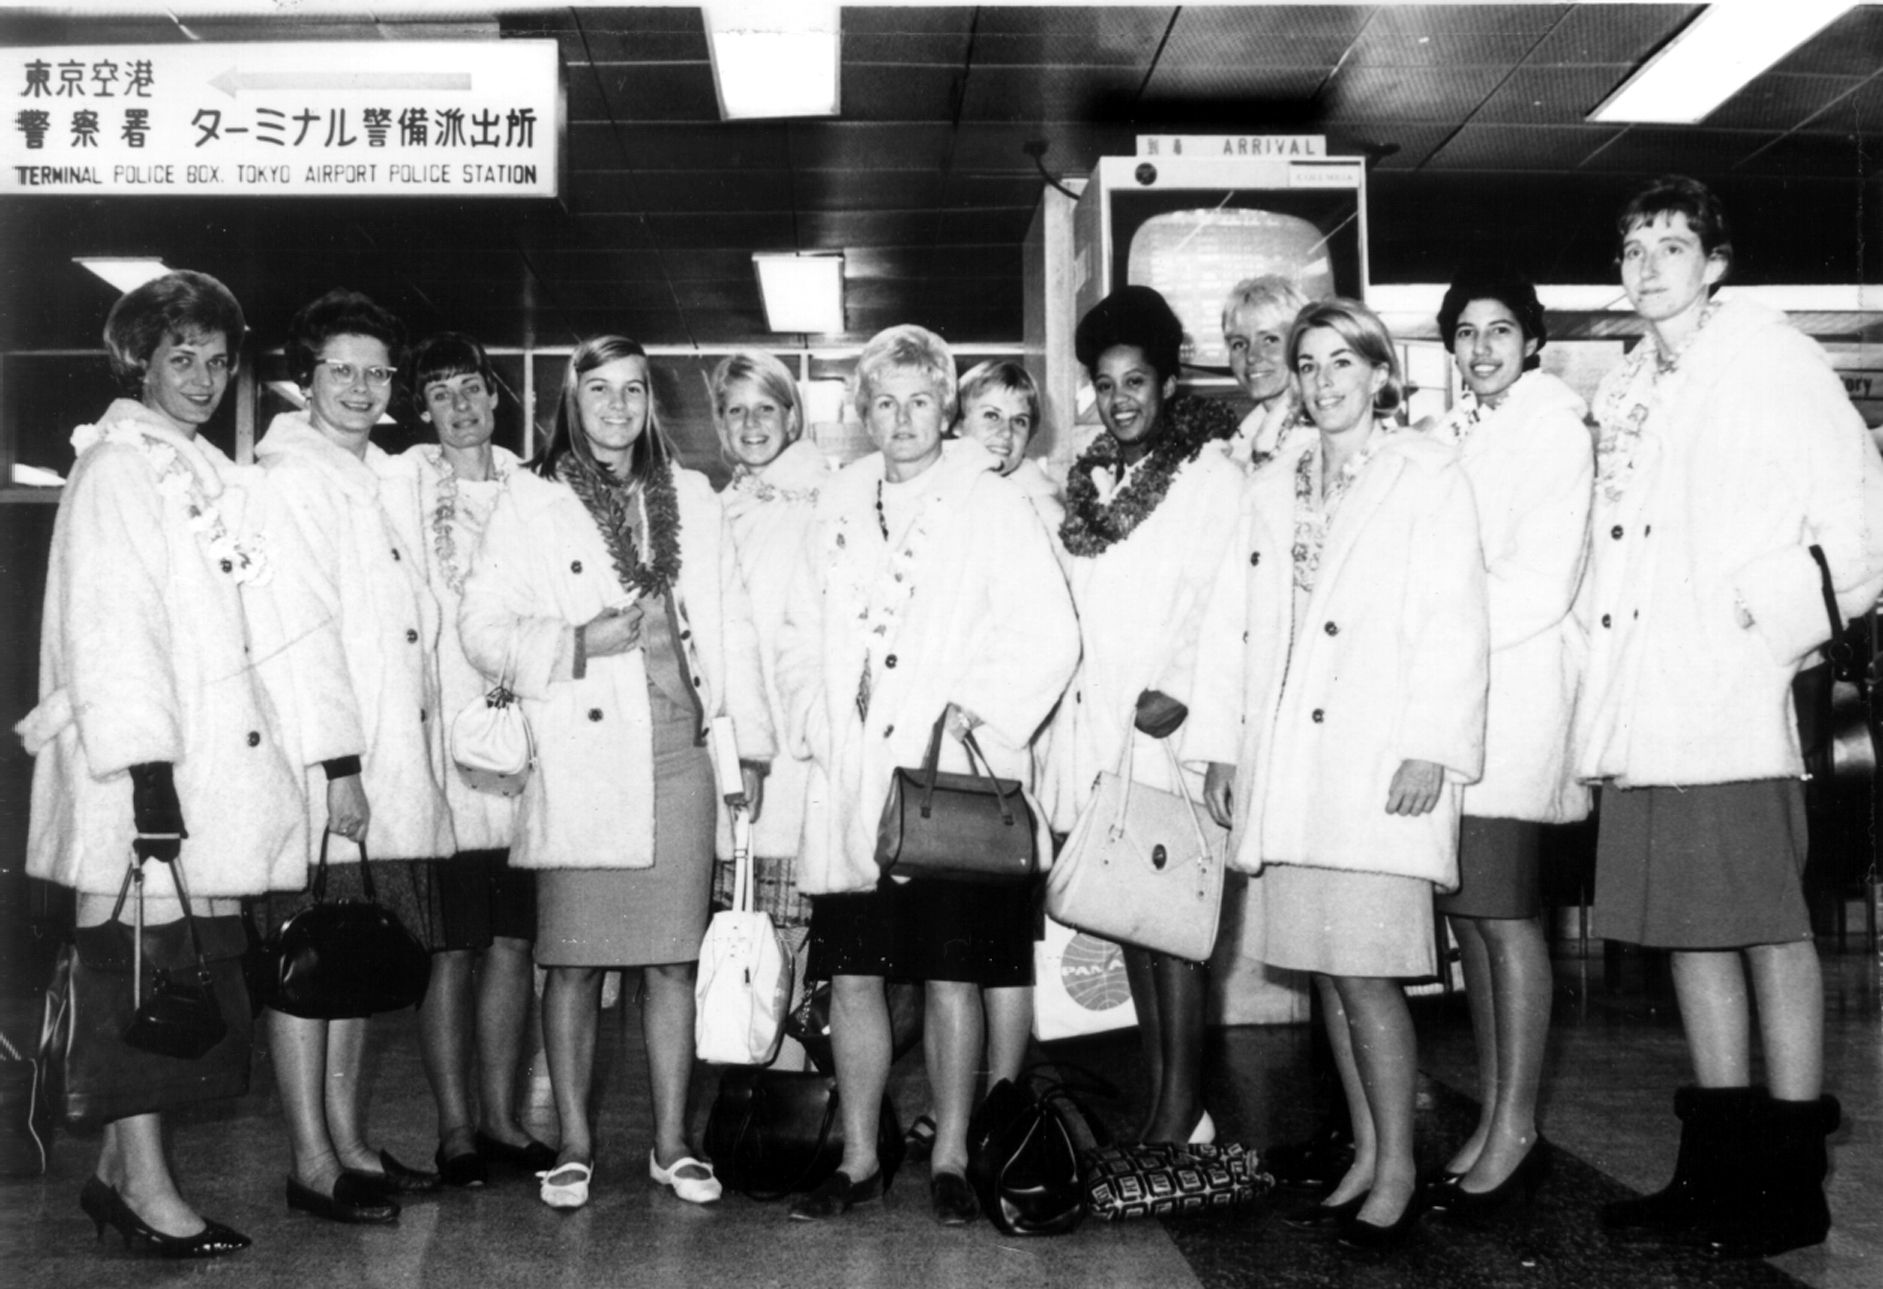 Usa Volleyball S 1964 Women S Olympic Team On The Way To Tokyo Japan For The Summer Games Women Volleyball Olympic Team Usa Volleyball